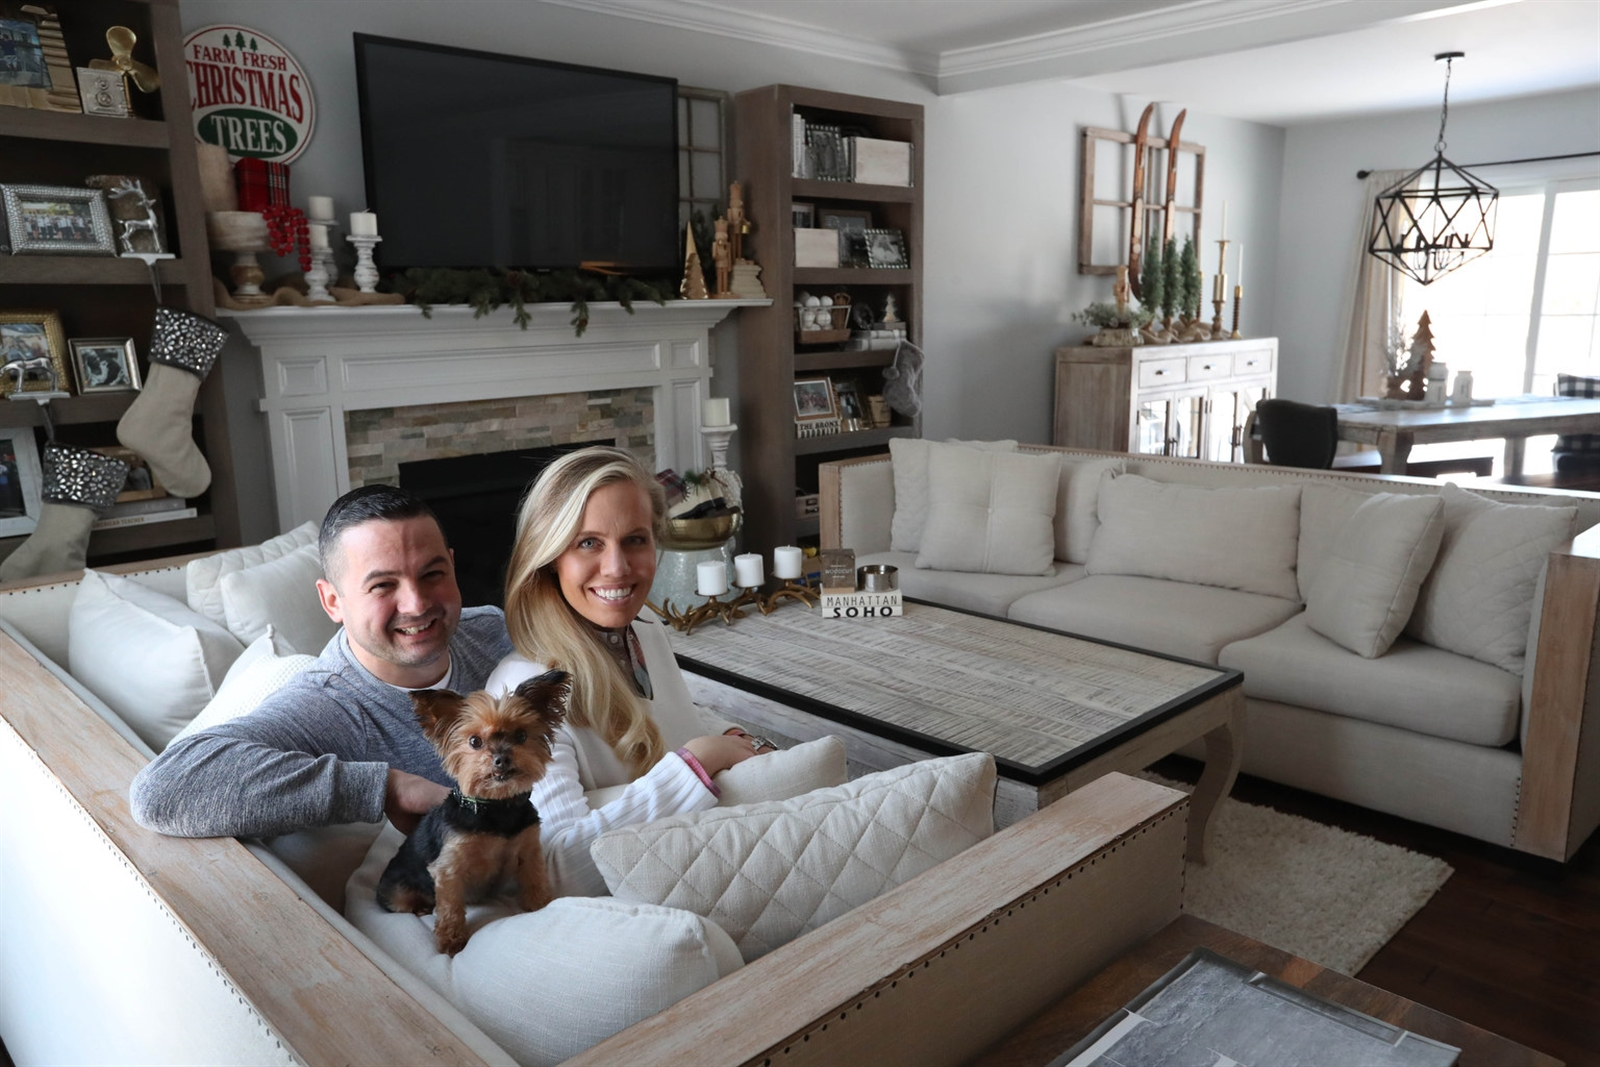 Adam and Heidie Buffomante, along with their Yorkie, Daisy, are ready for the holidays in their home located just outside the Village of Williamsville.